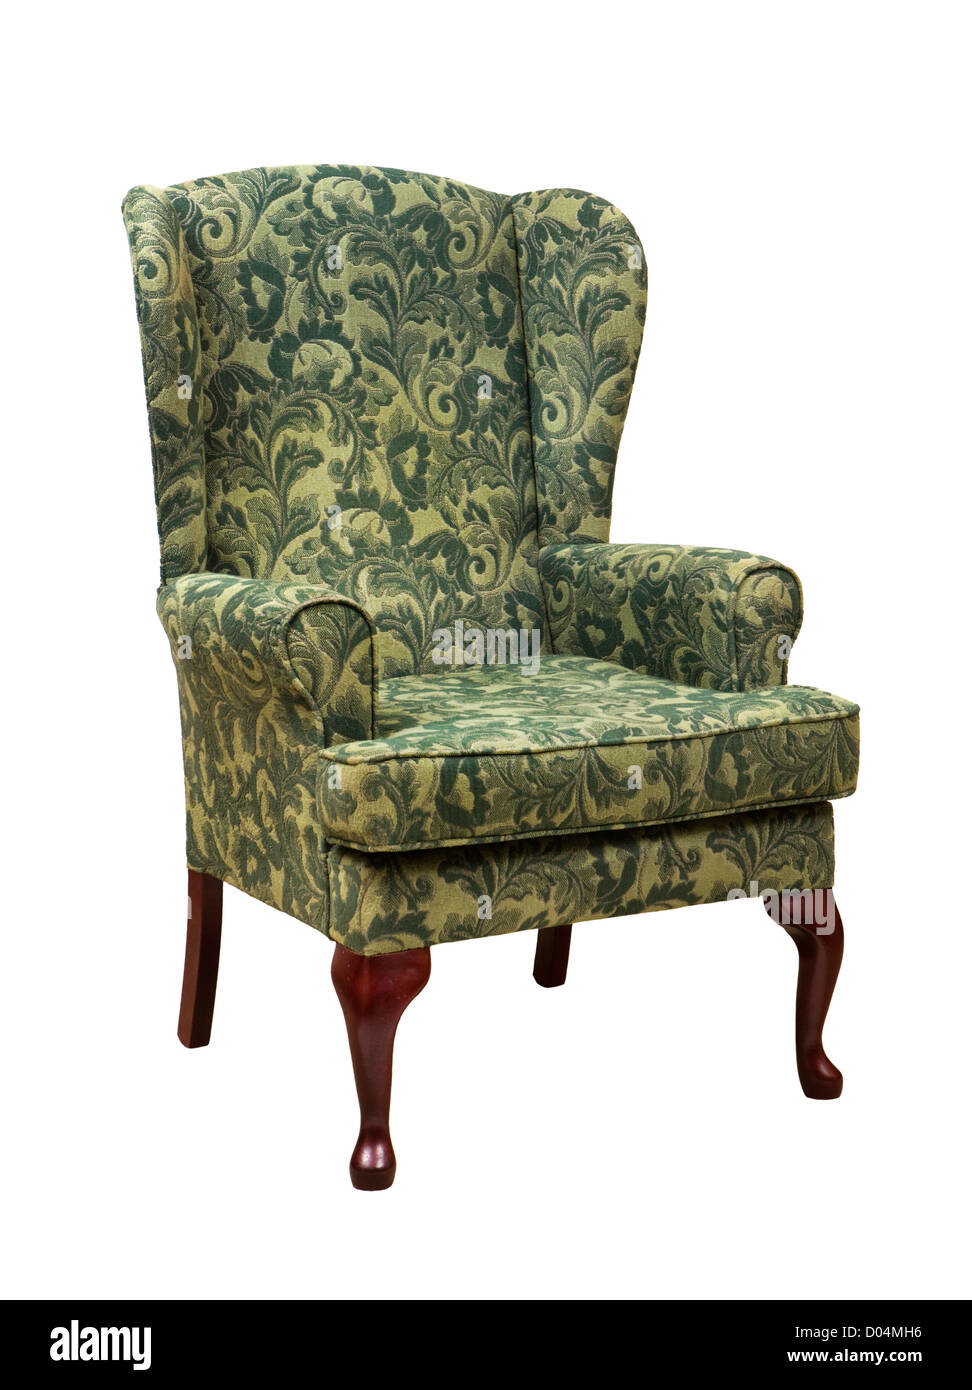 Armchair, traditional style. - Stock Image